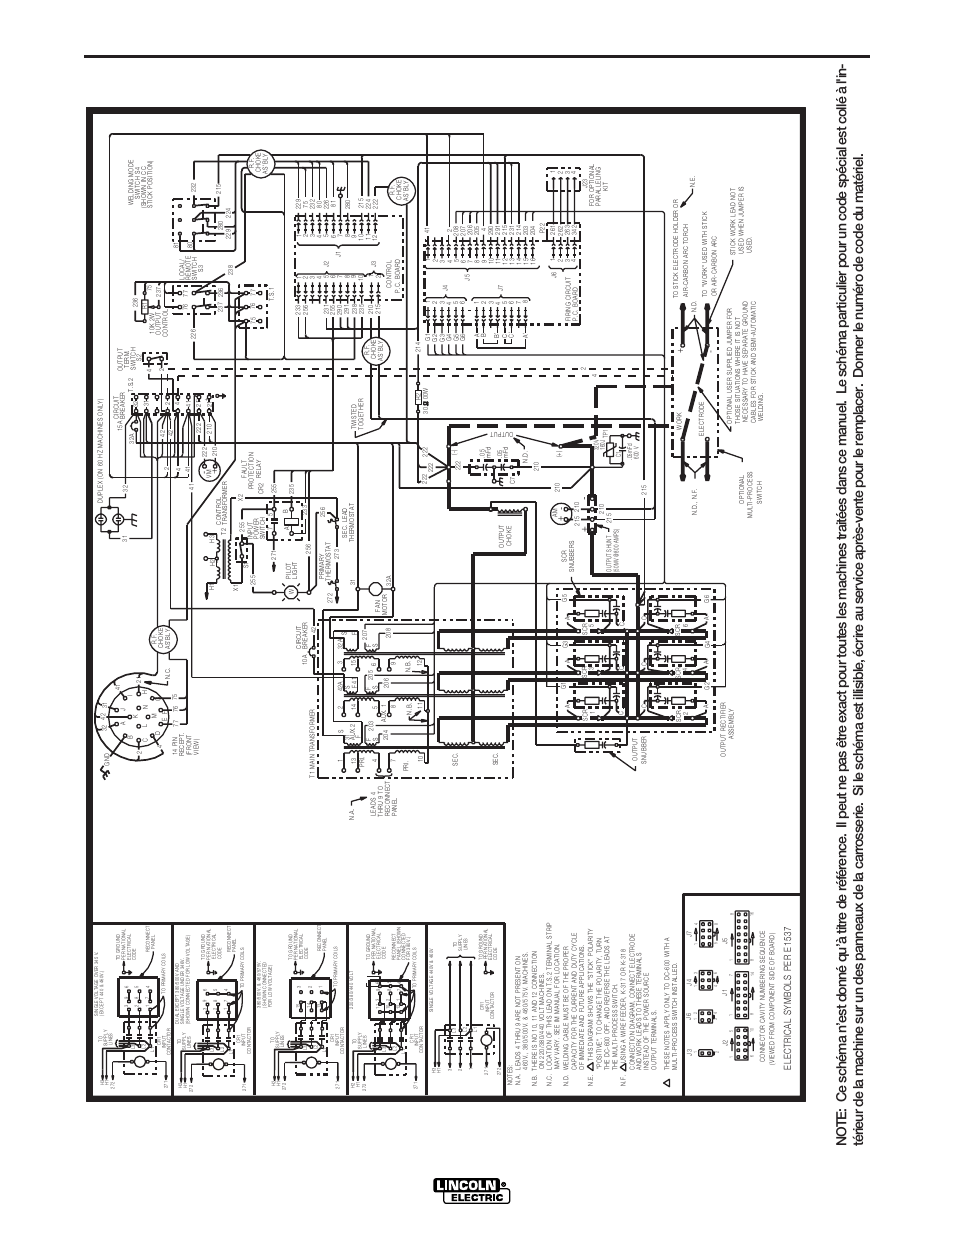 hight resolution of dorable lincoln sa 250 welder wiring diagram gallery everything lincoln ranger 250 gxt